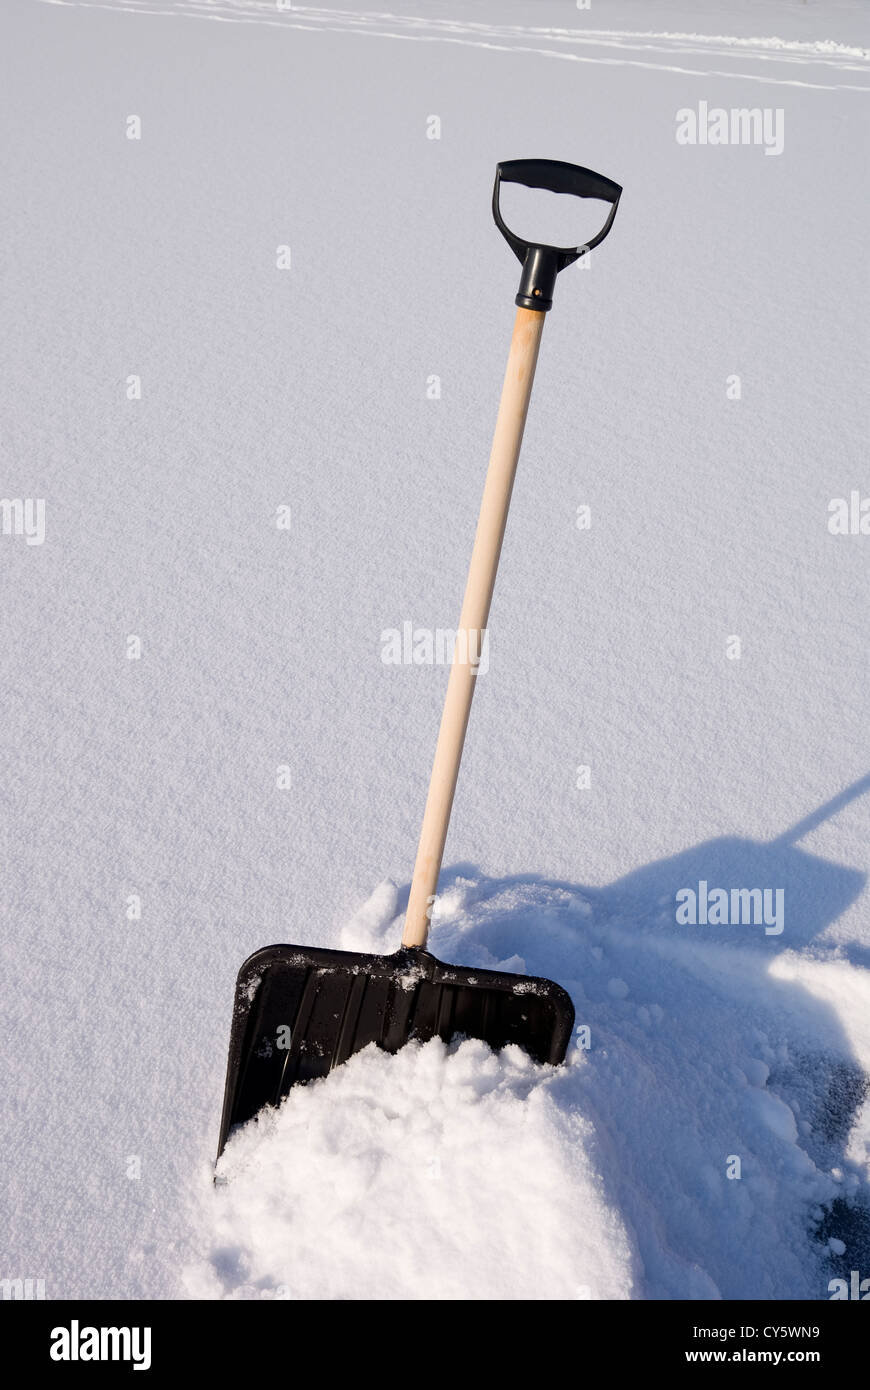 snow shovel on on piled hill snow - Stock Image